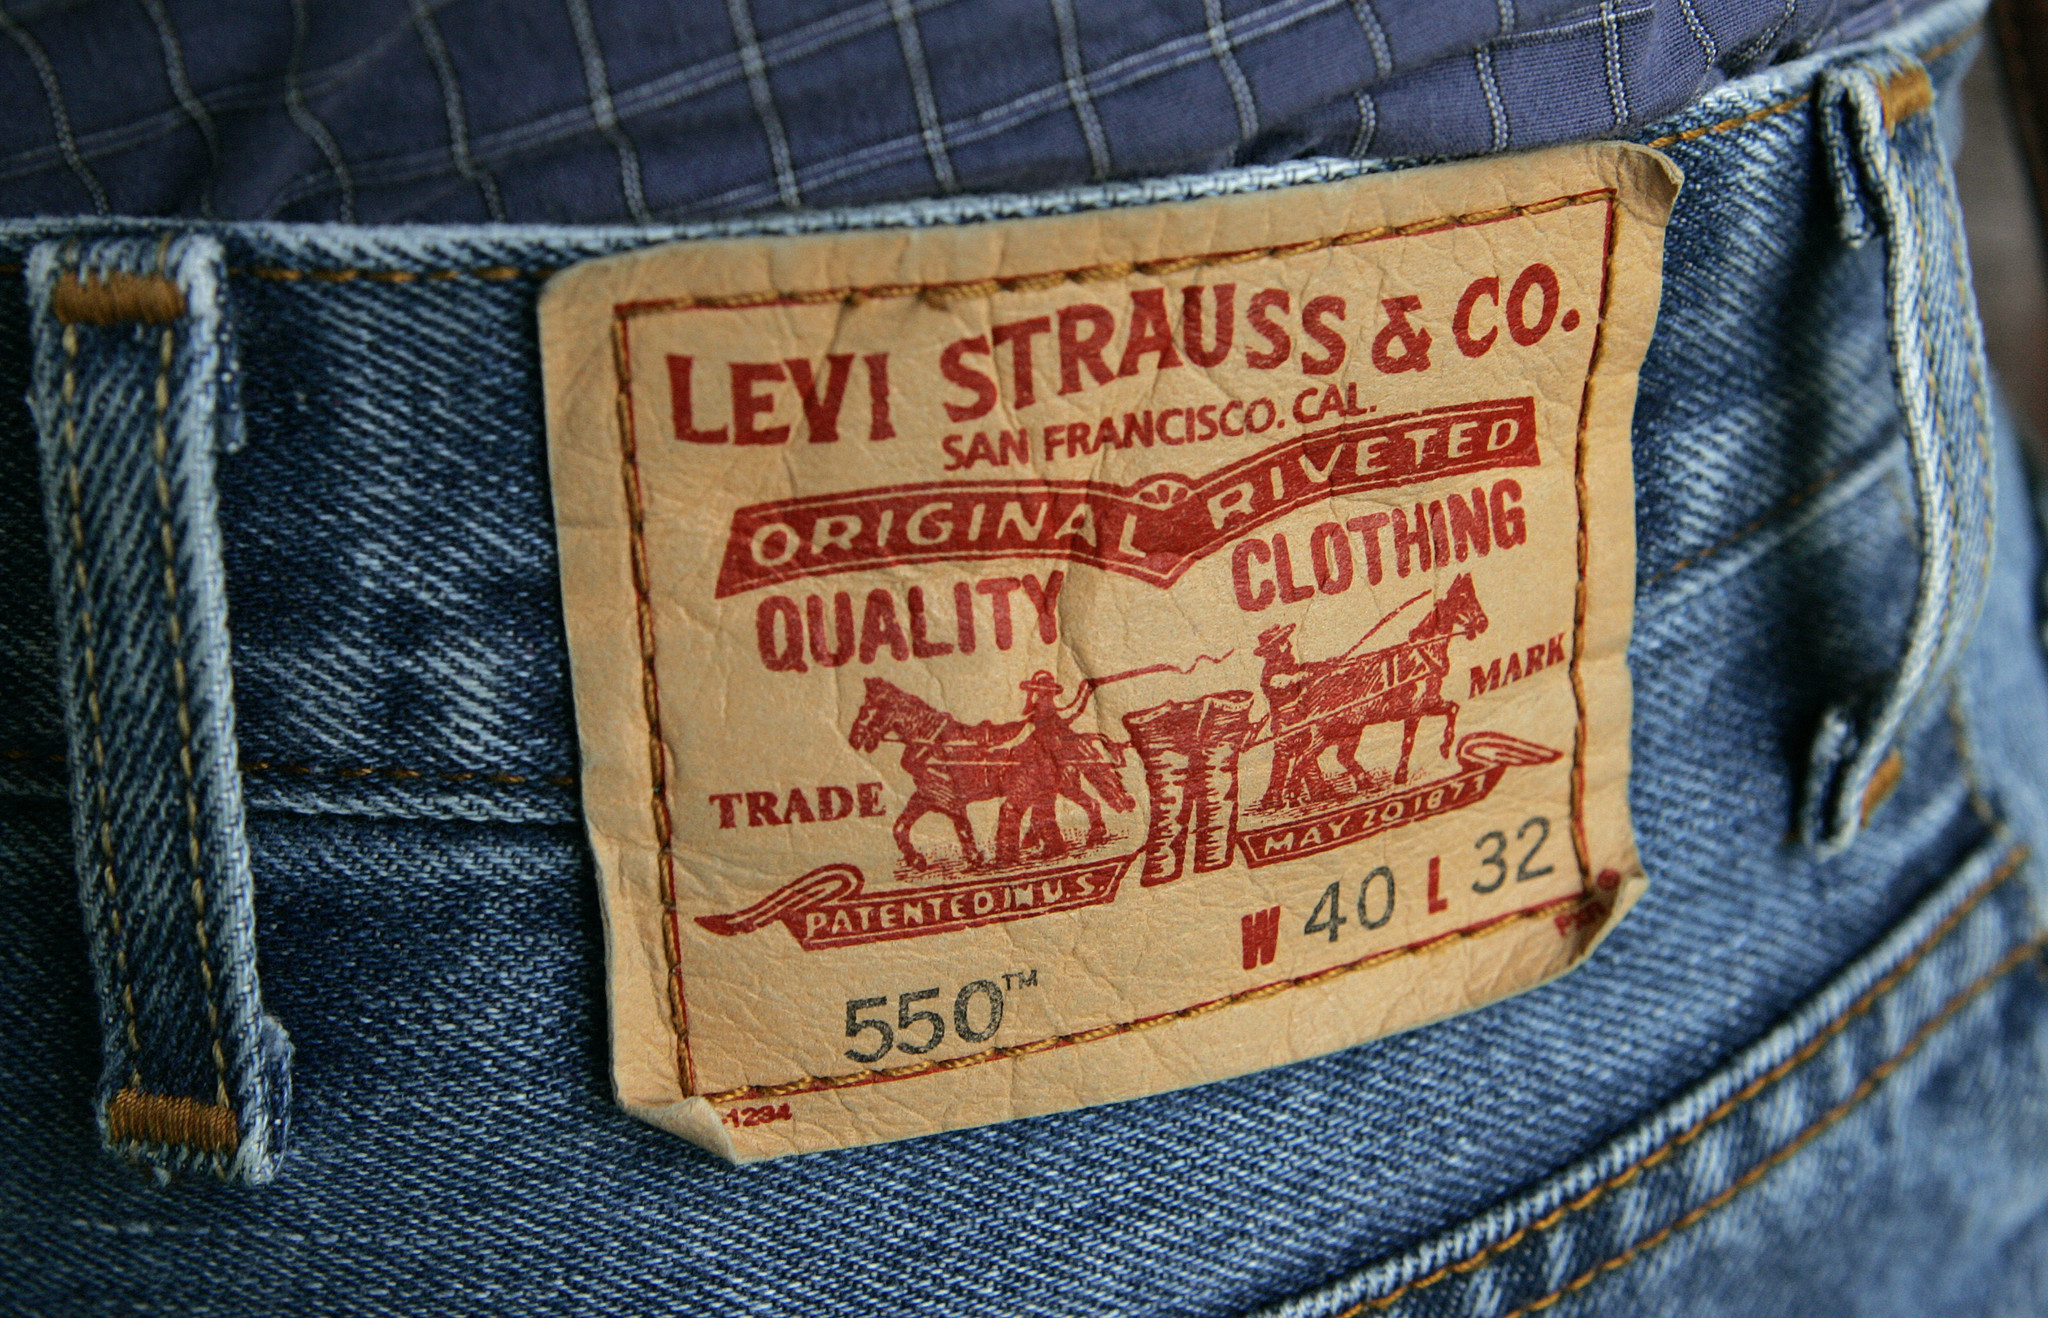 Levi S Ceo Hasn T Washed Jeans In A Year Admits It Sounds